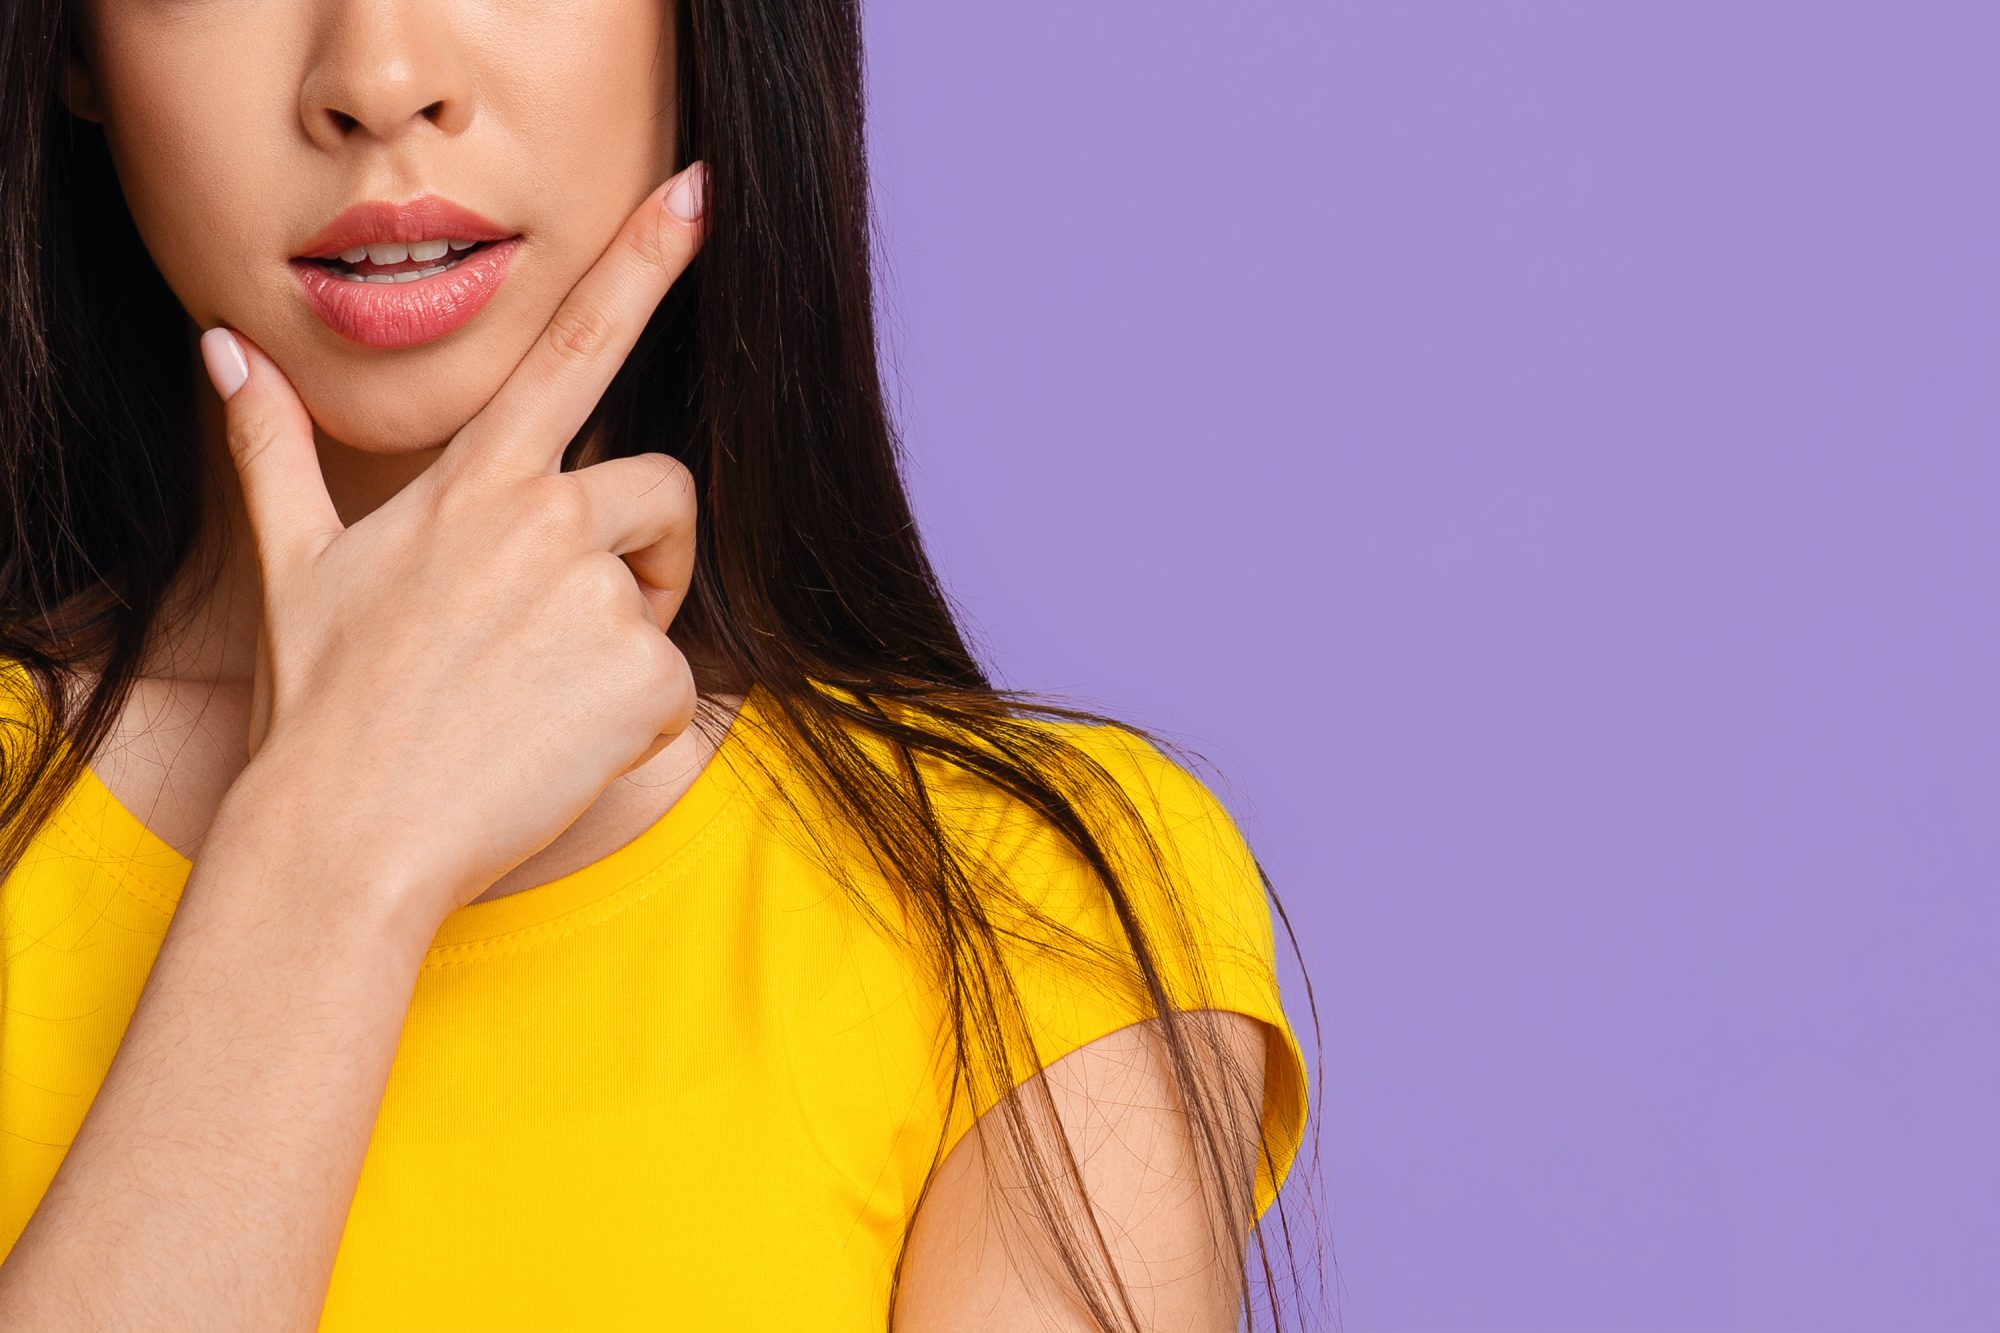 How to Stop Touching Your Face So Much: woman touching her face